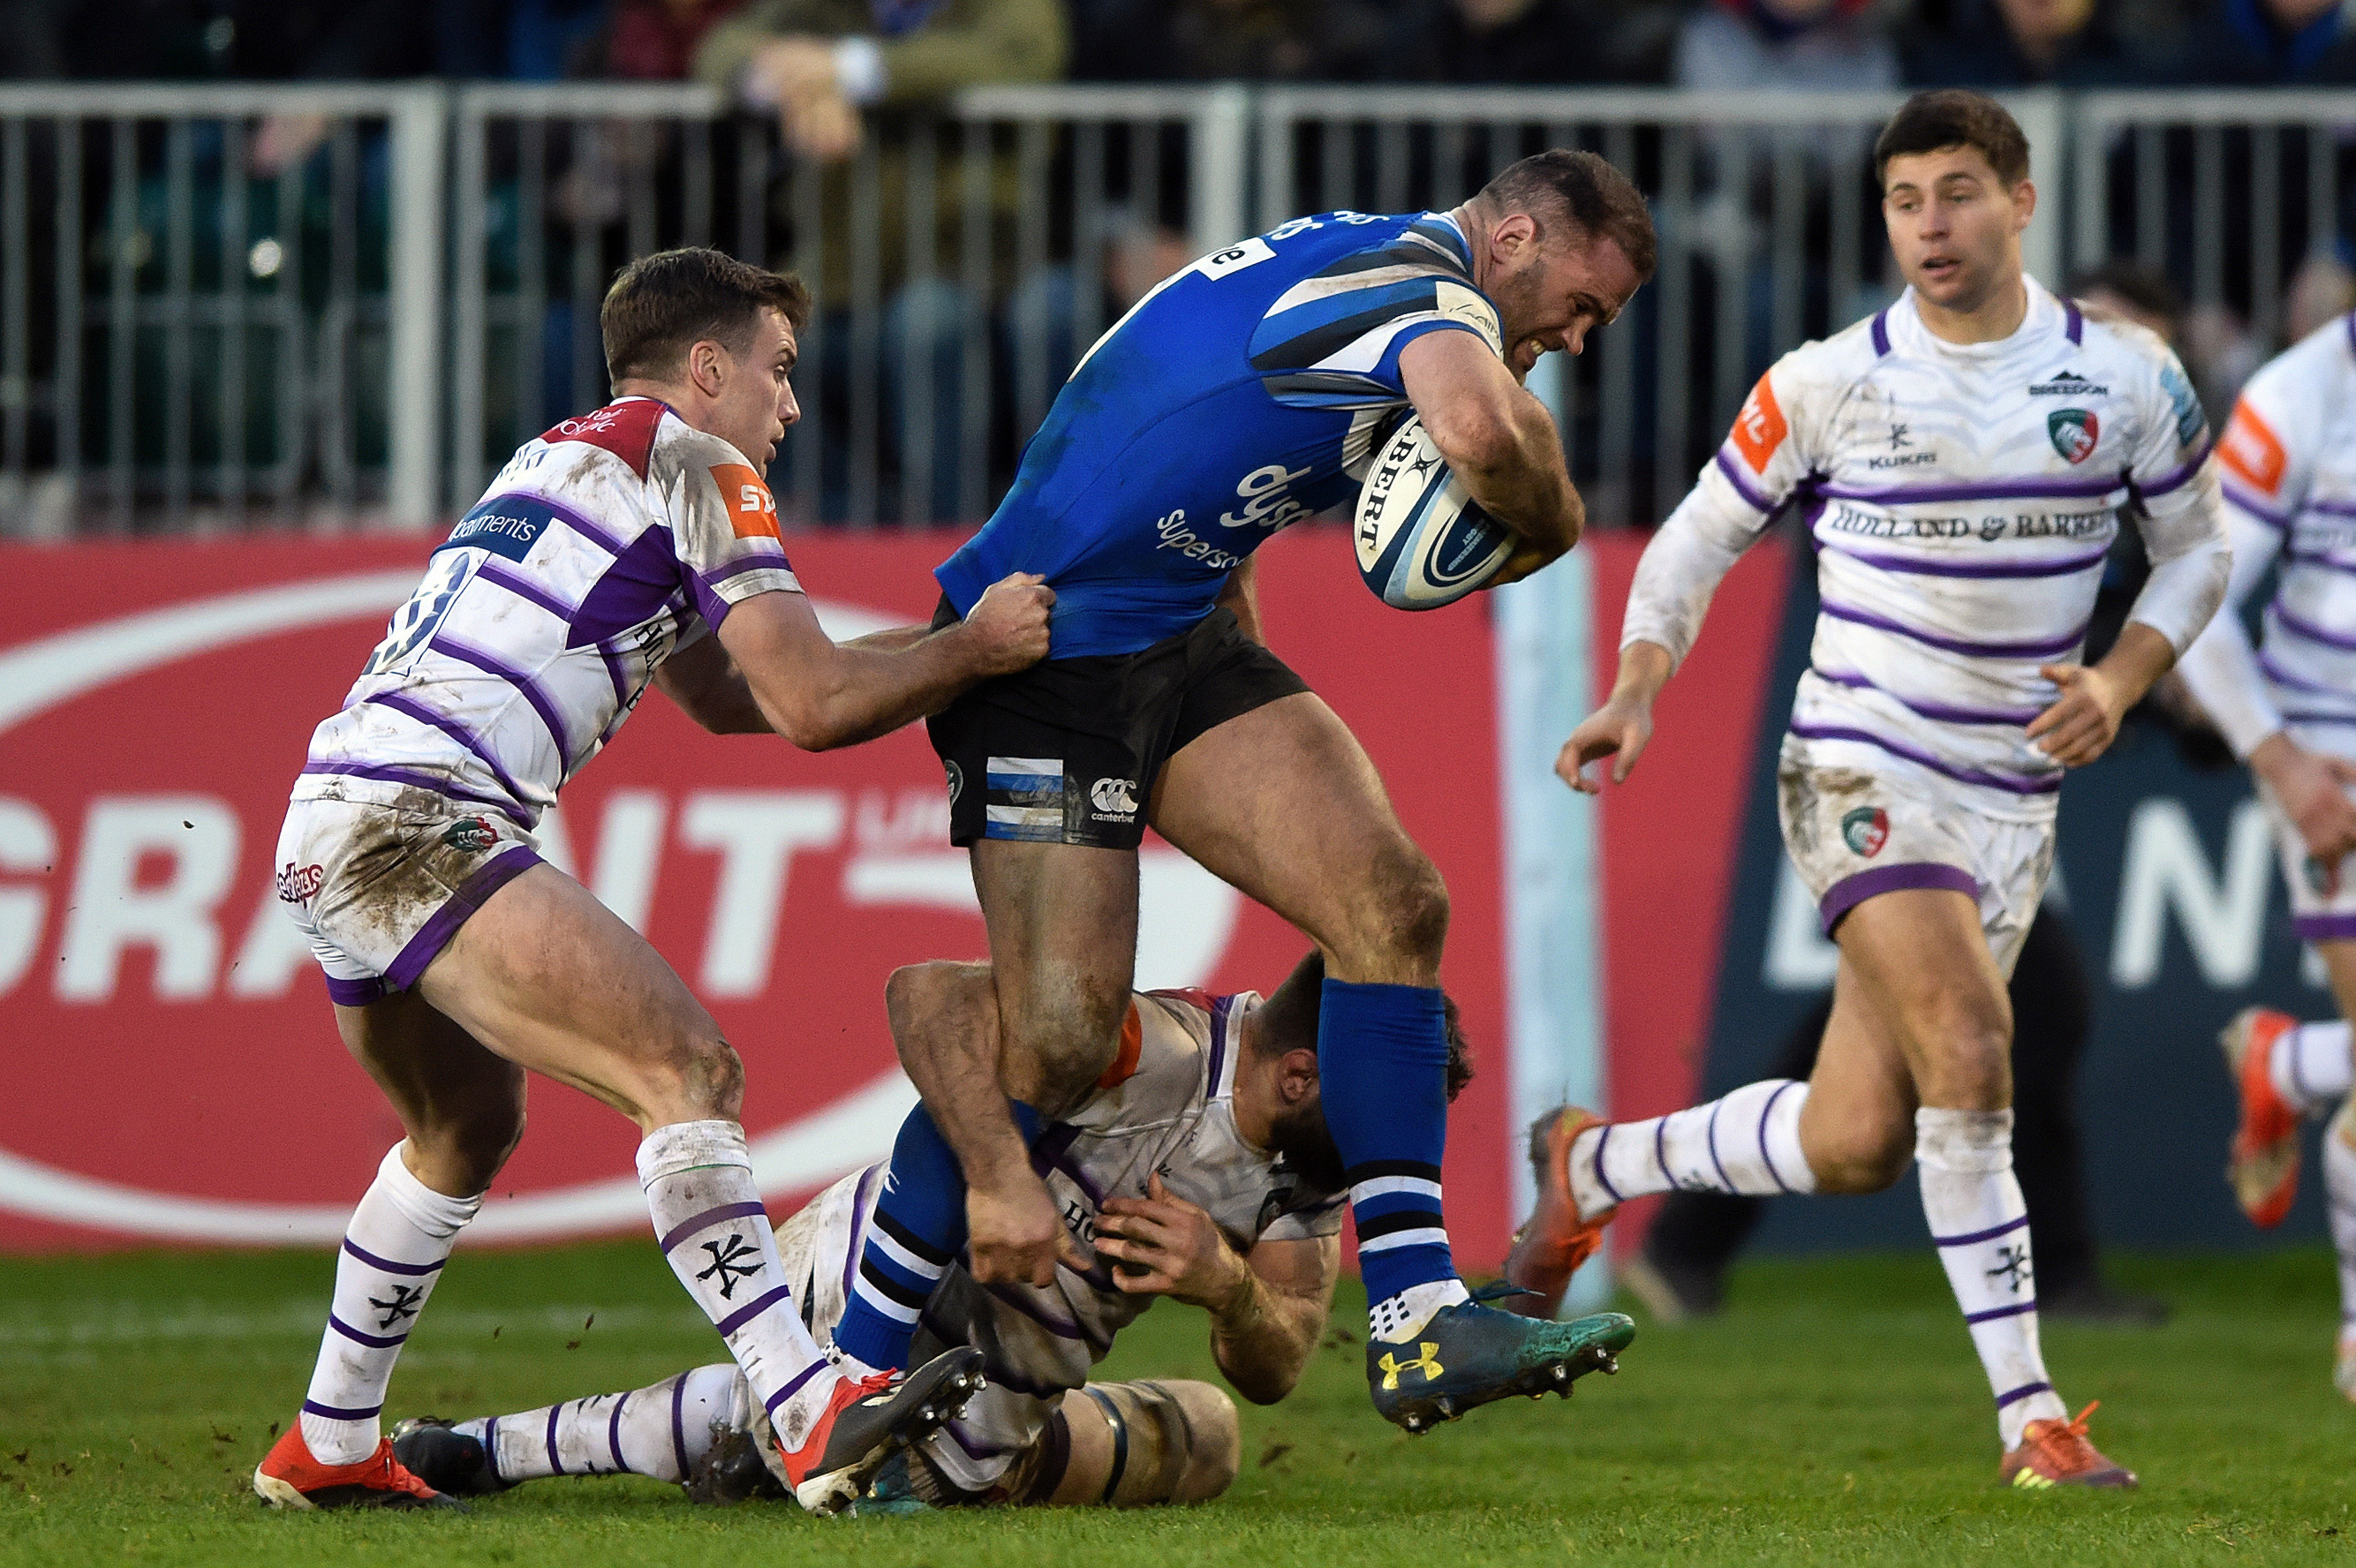 Grant UK continues long-term partnership with Bath Rugby